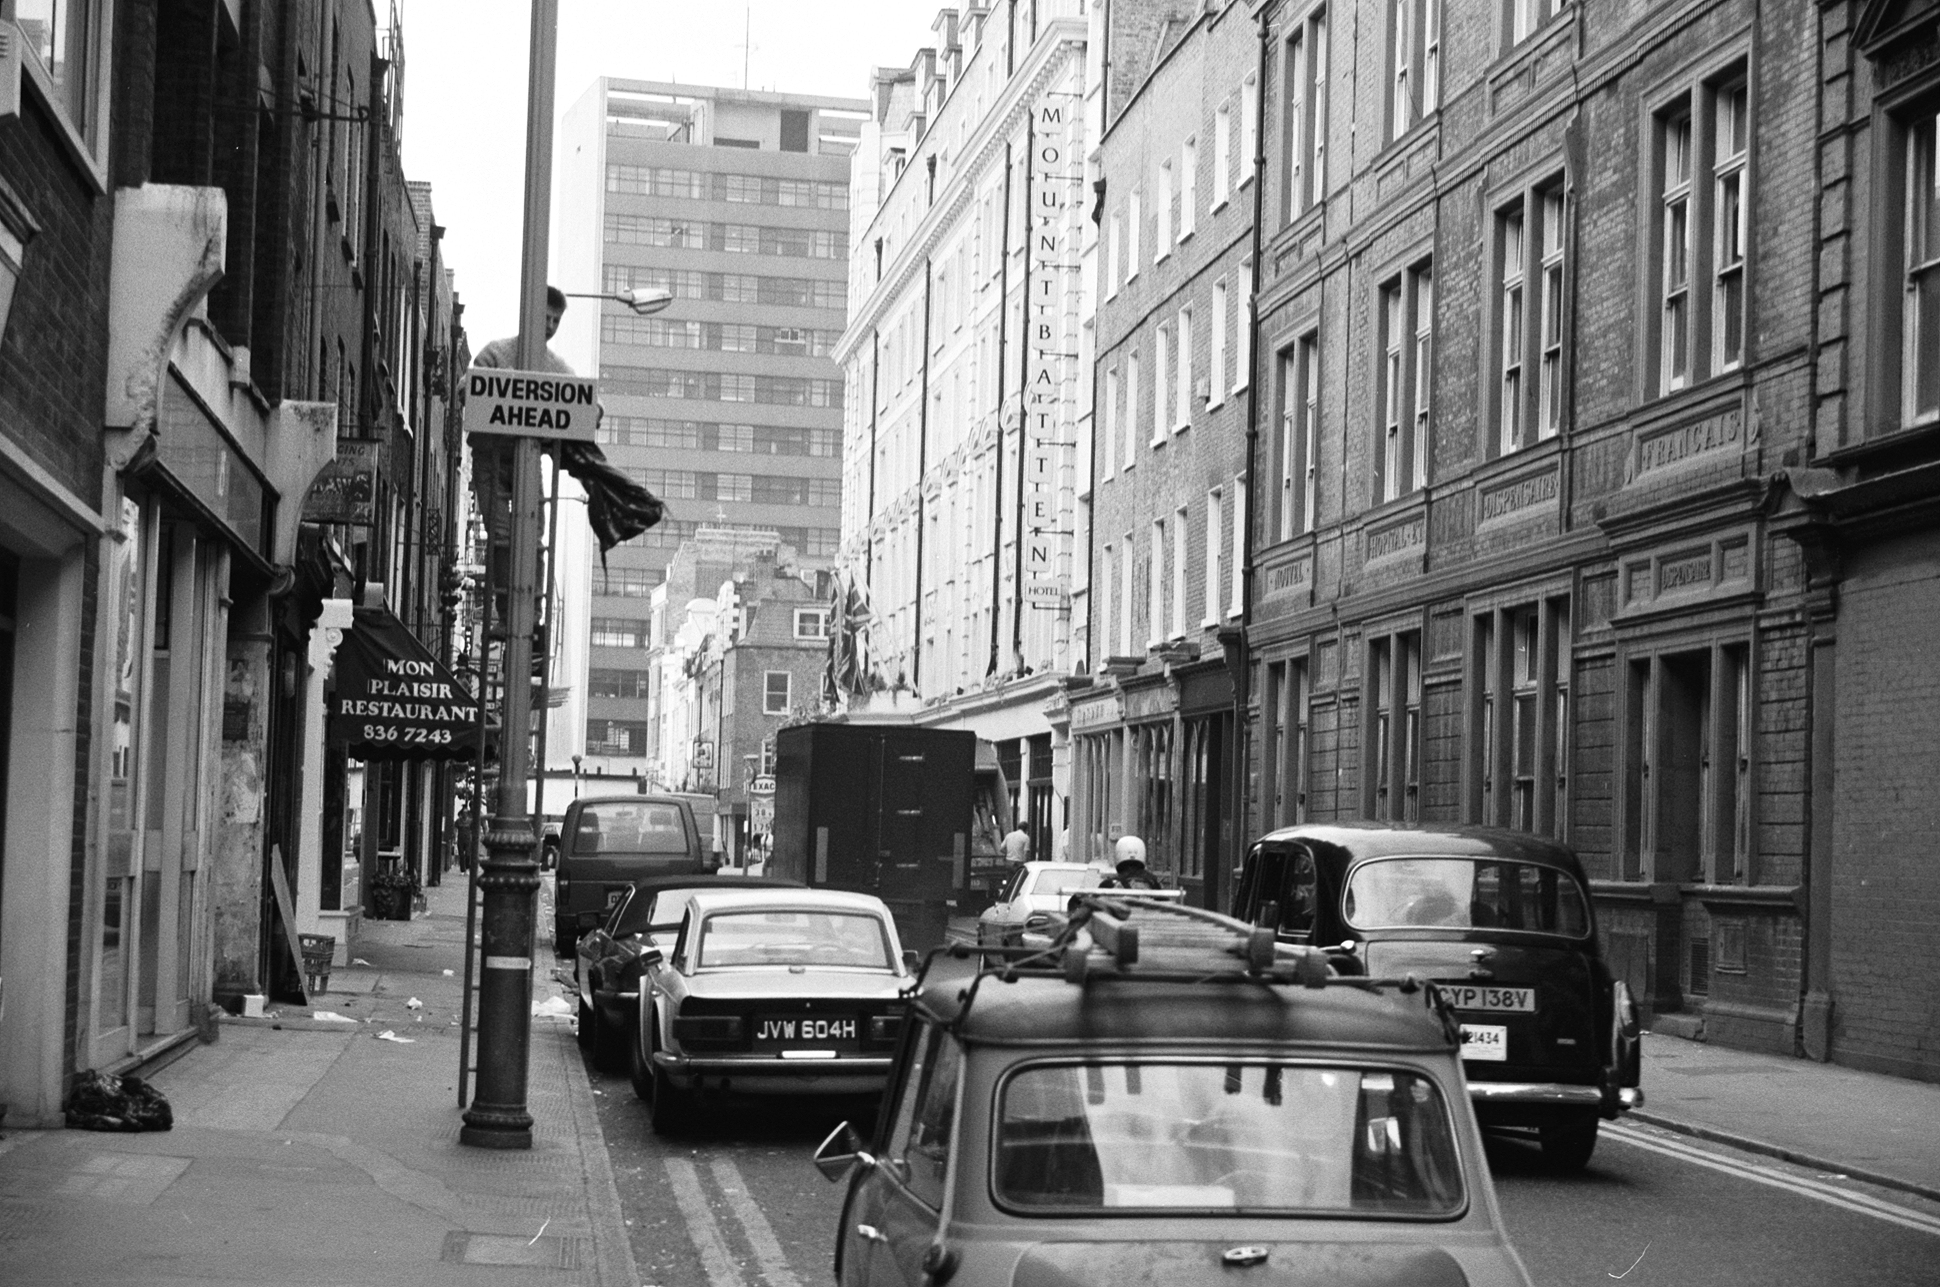 Monmouth Street in the 1960s.